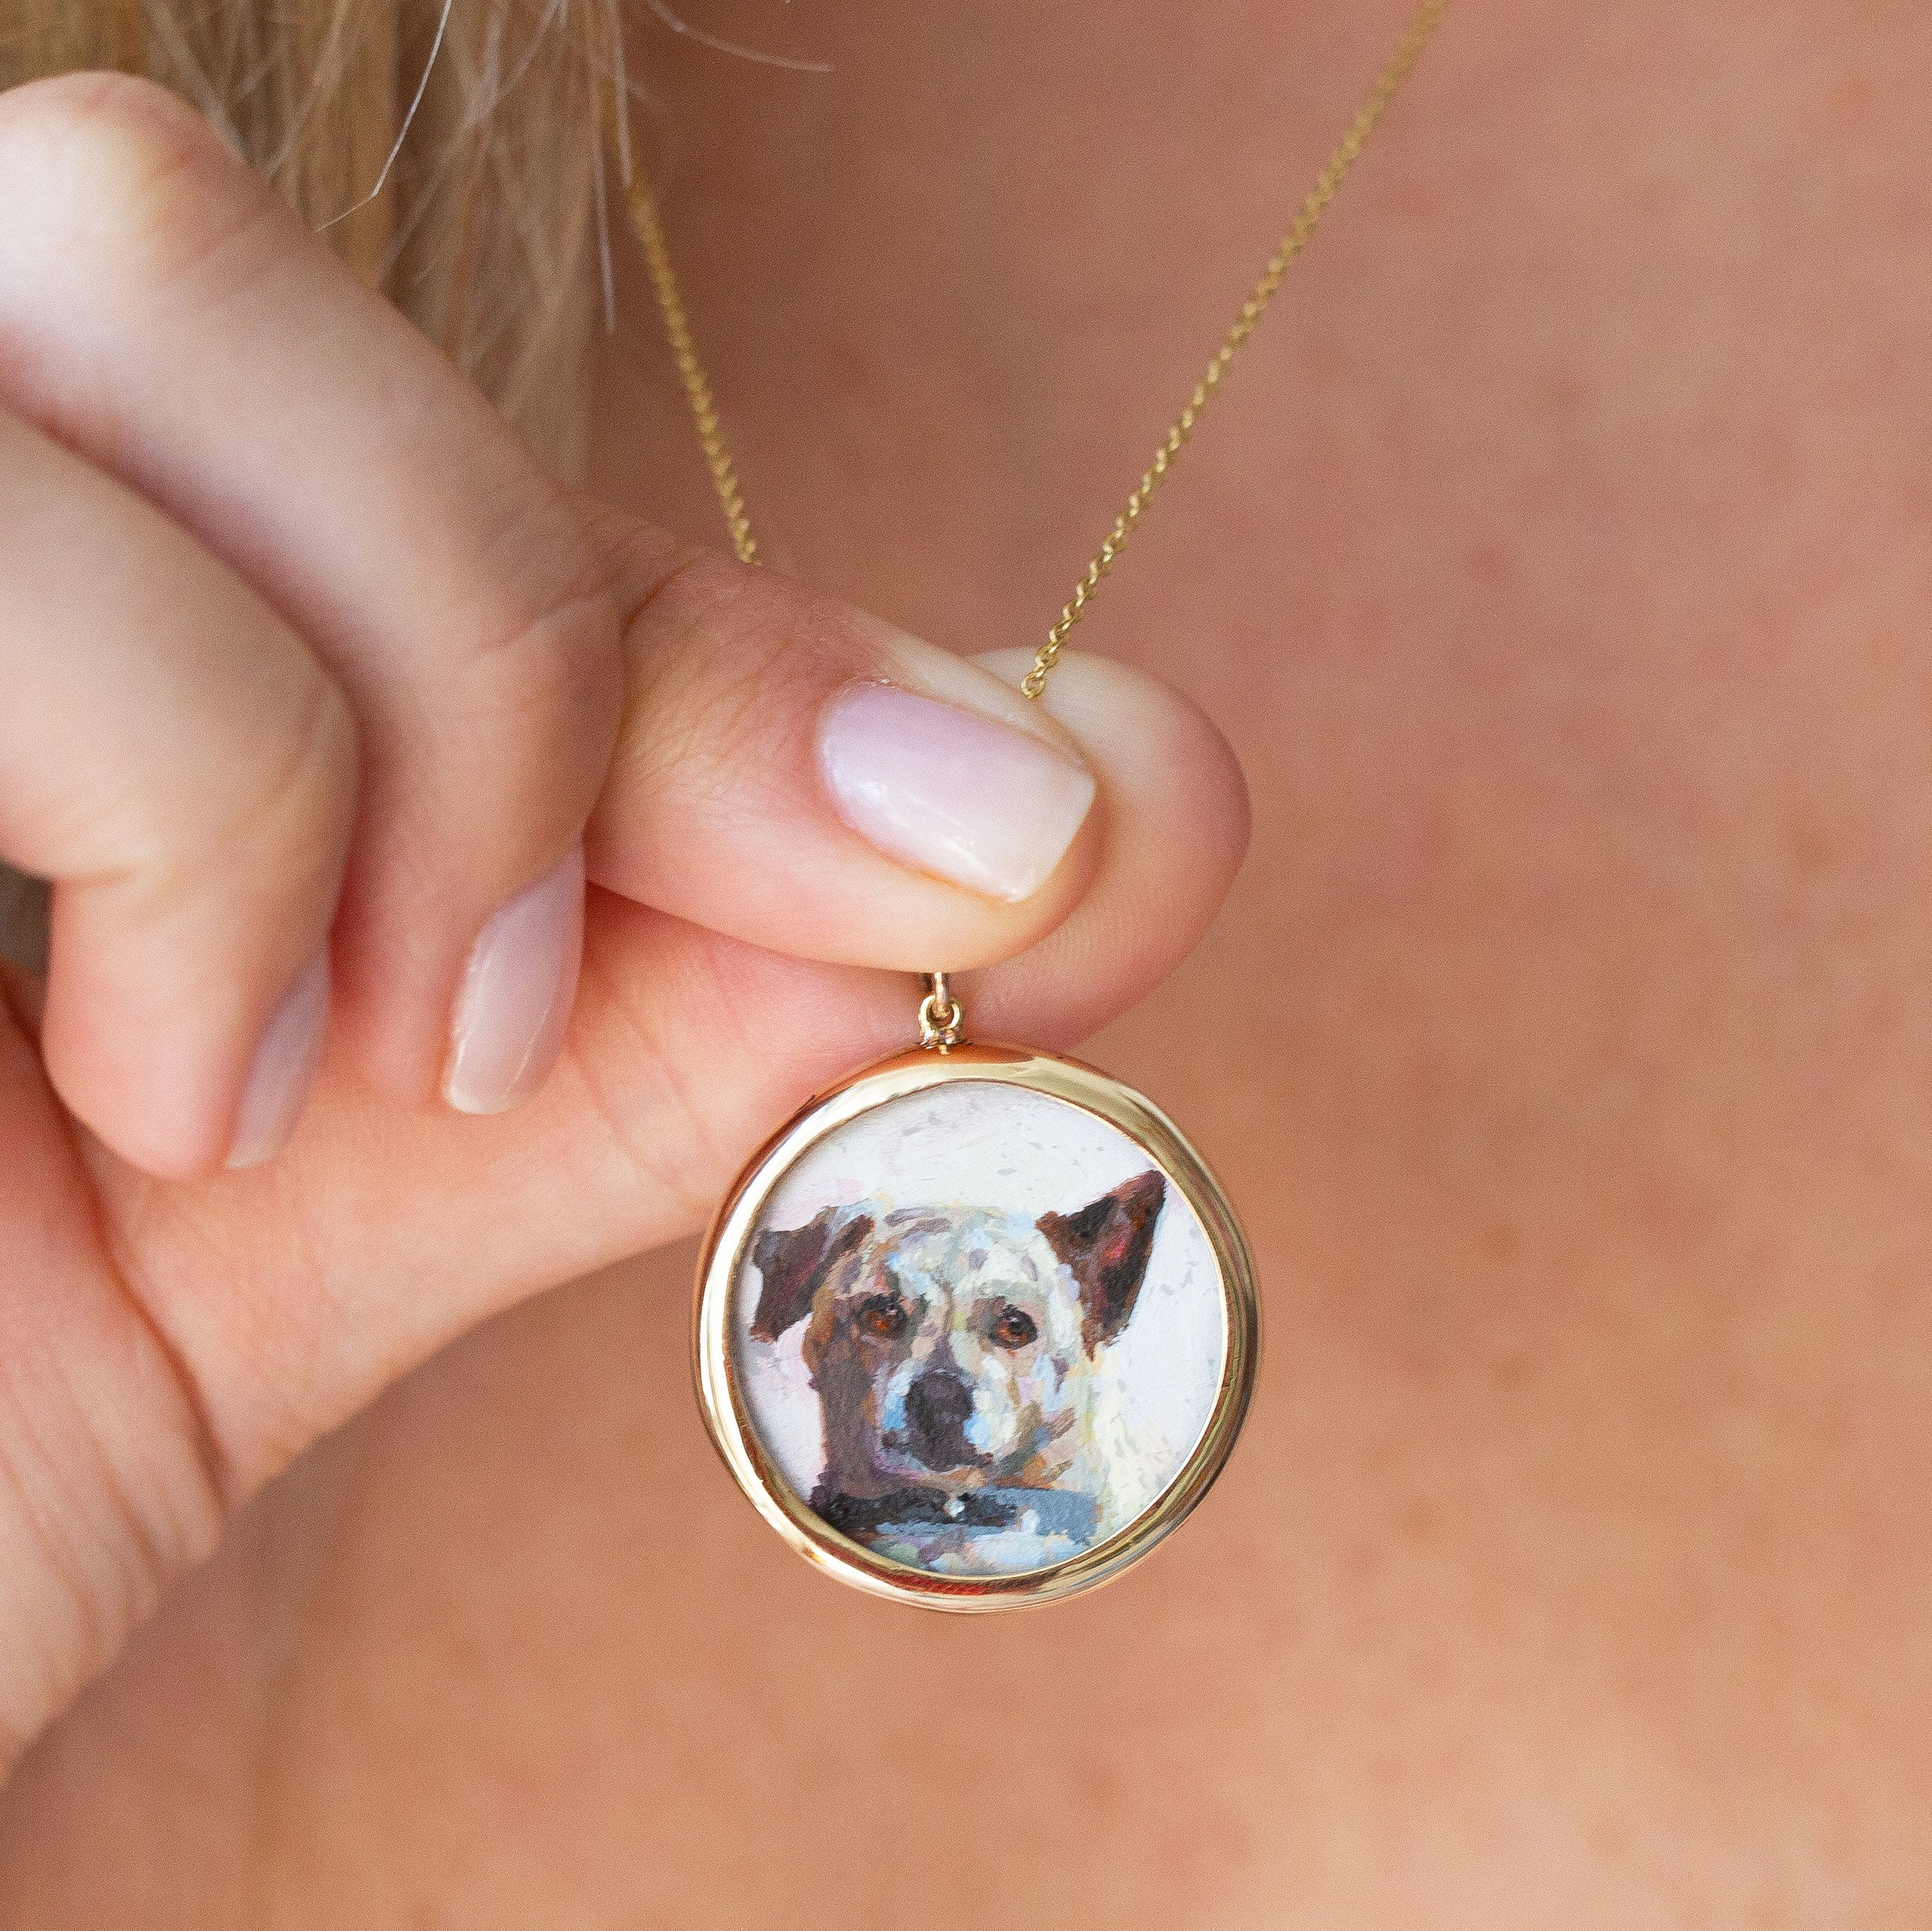 The F&B Custom Hand-Painted Pet Portrait Necklace